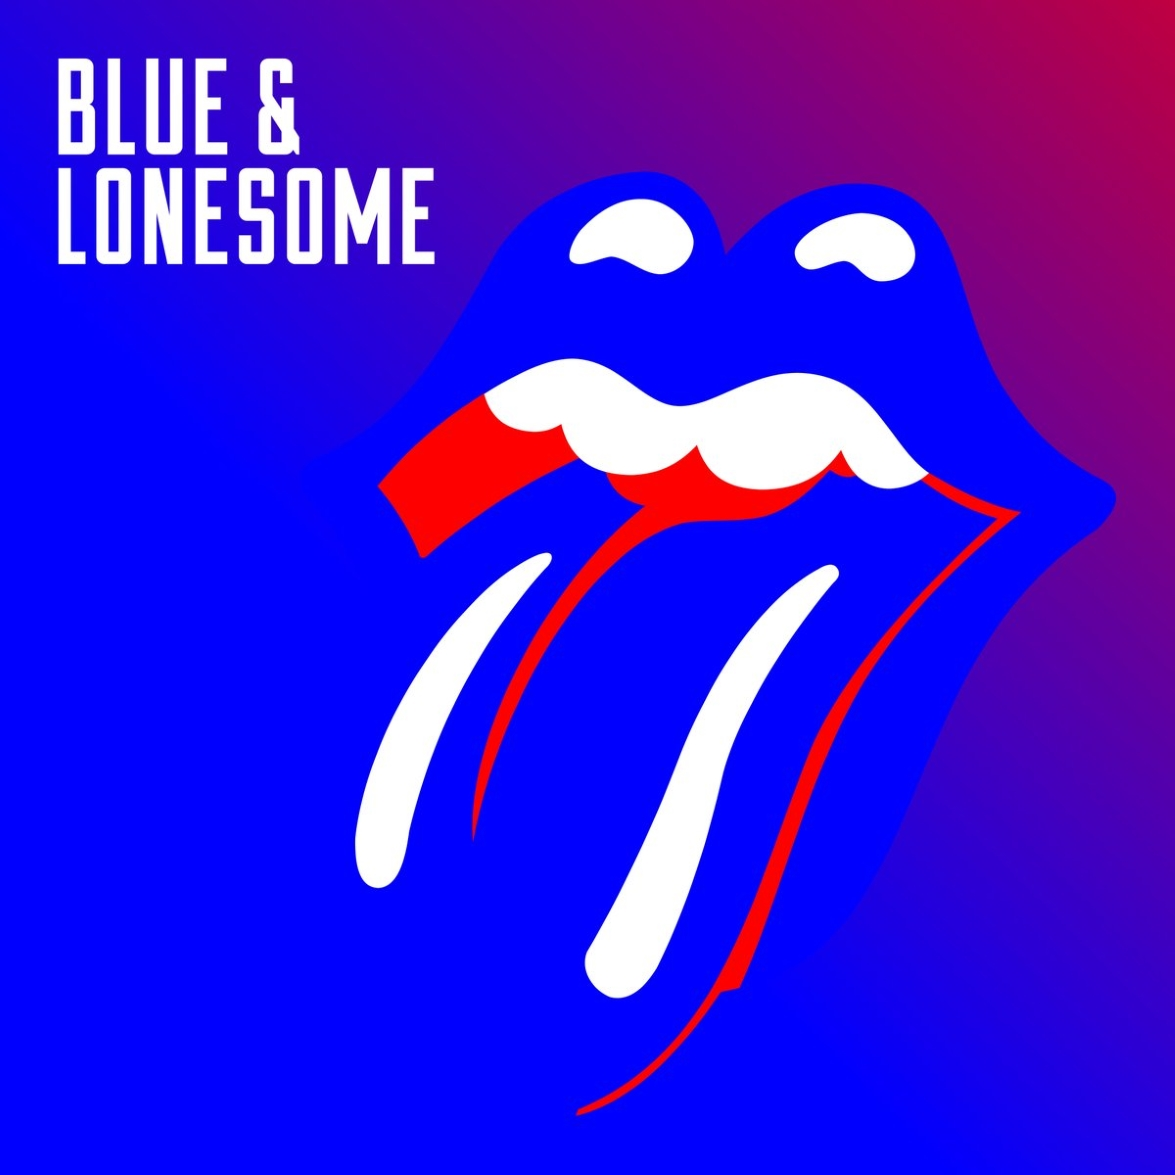 us s projection upgraded for the rolling stones blue lonesome